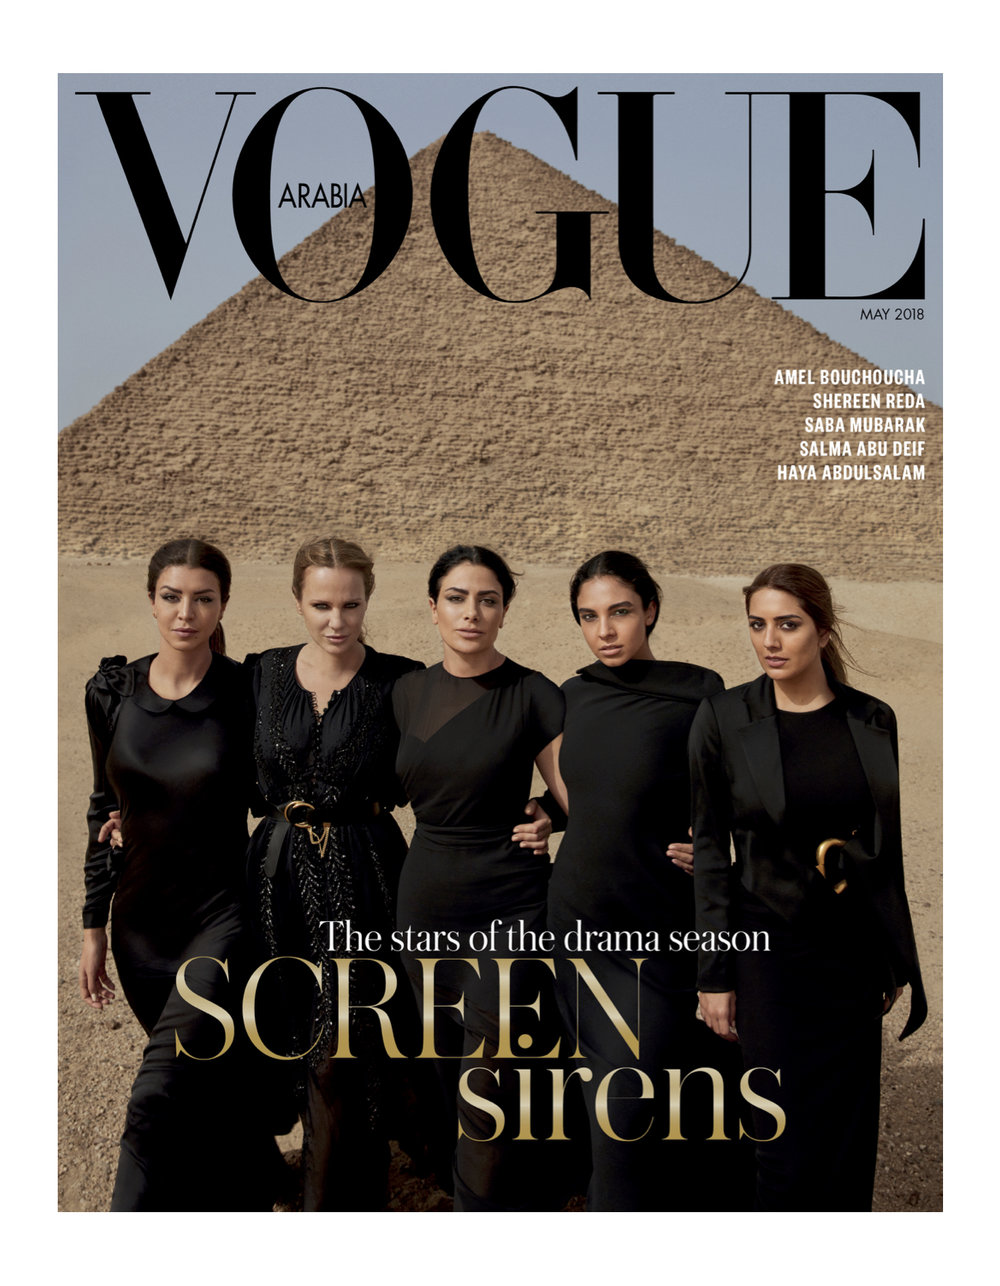 Stars of the drama season x Vogue Arabia